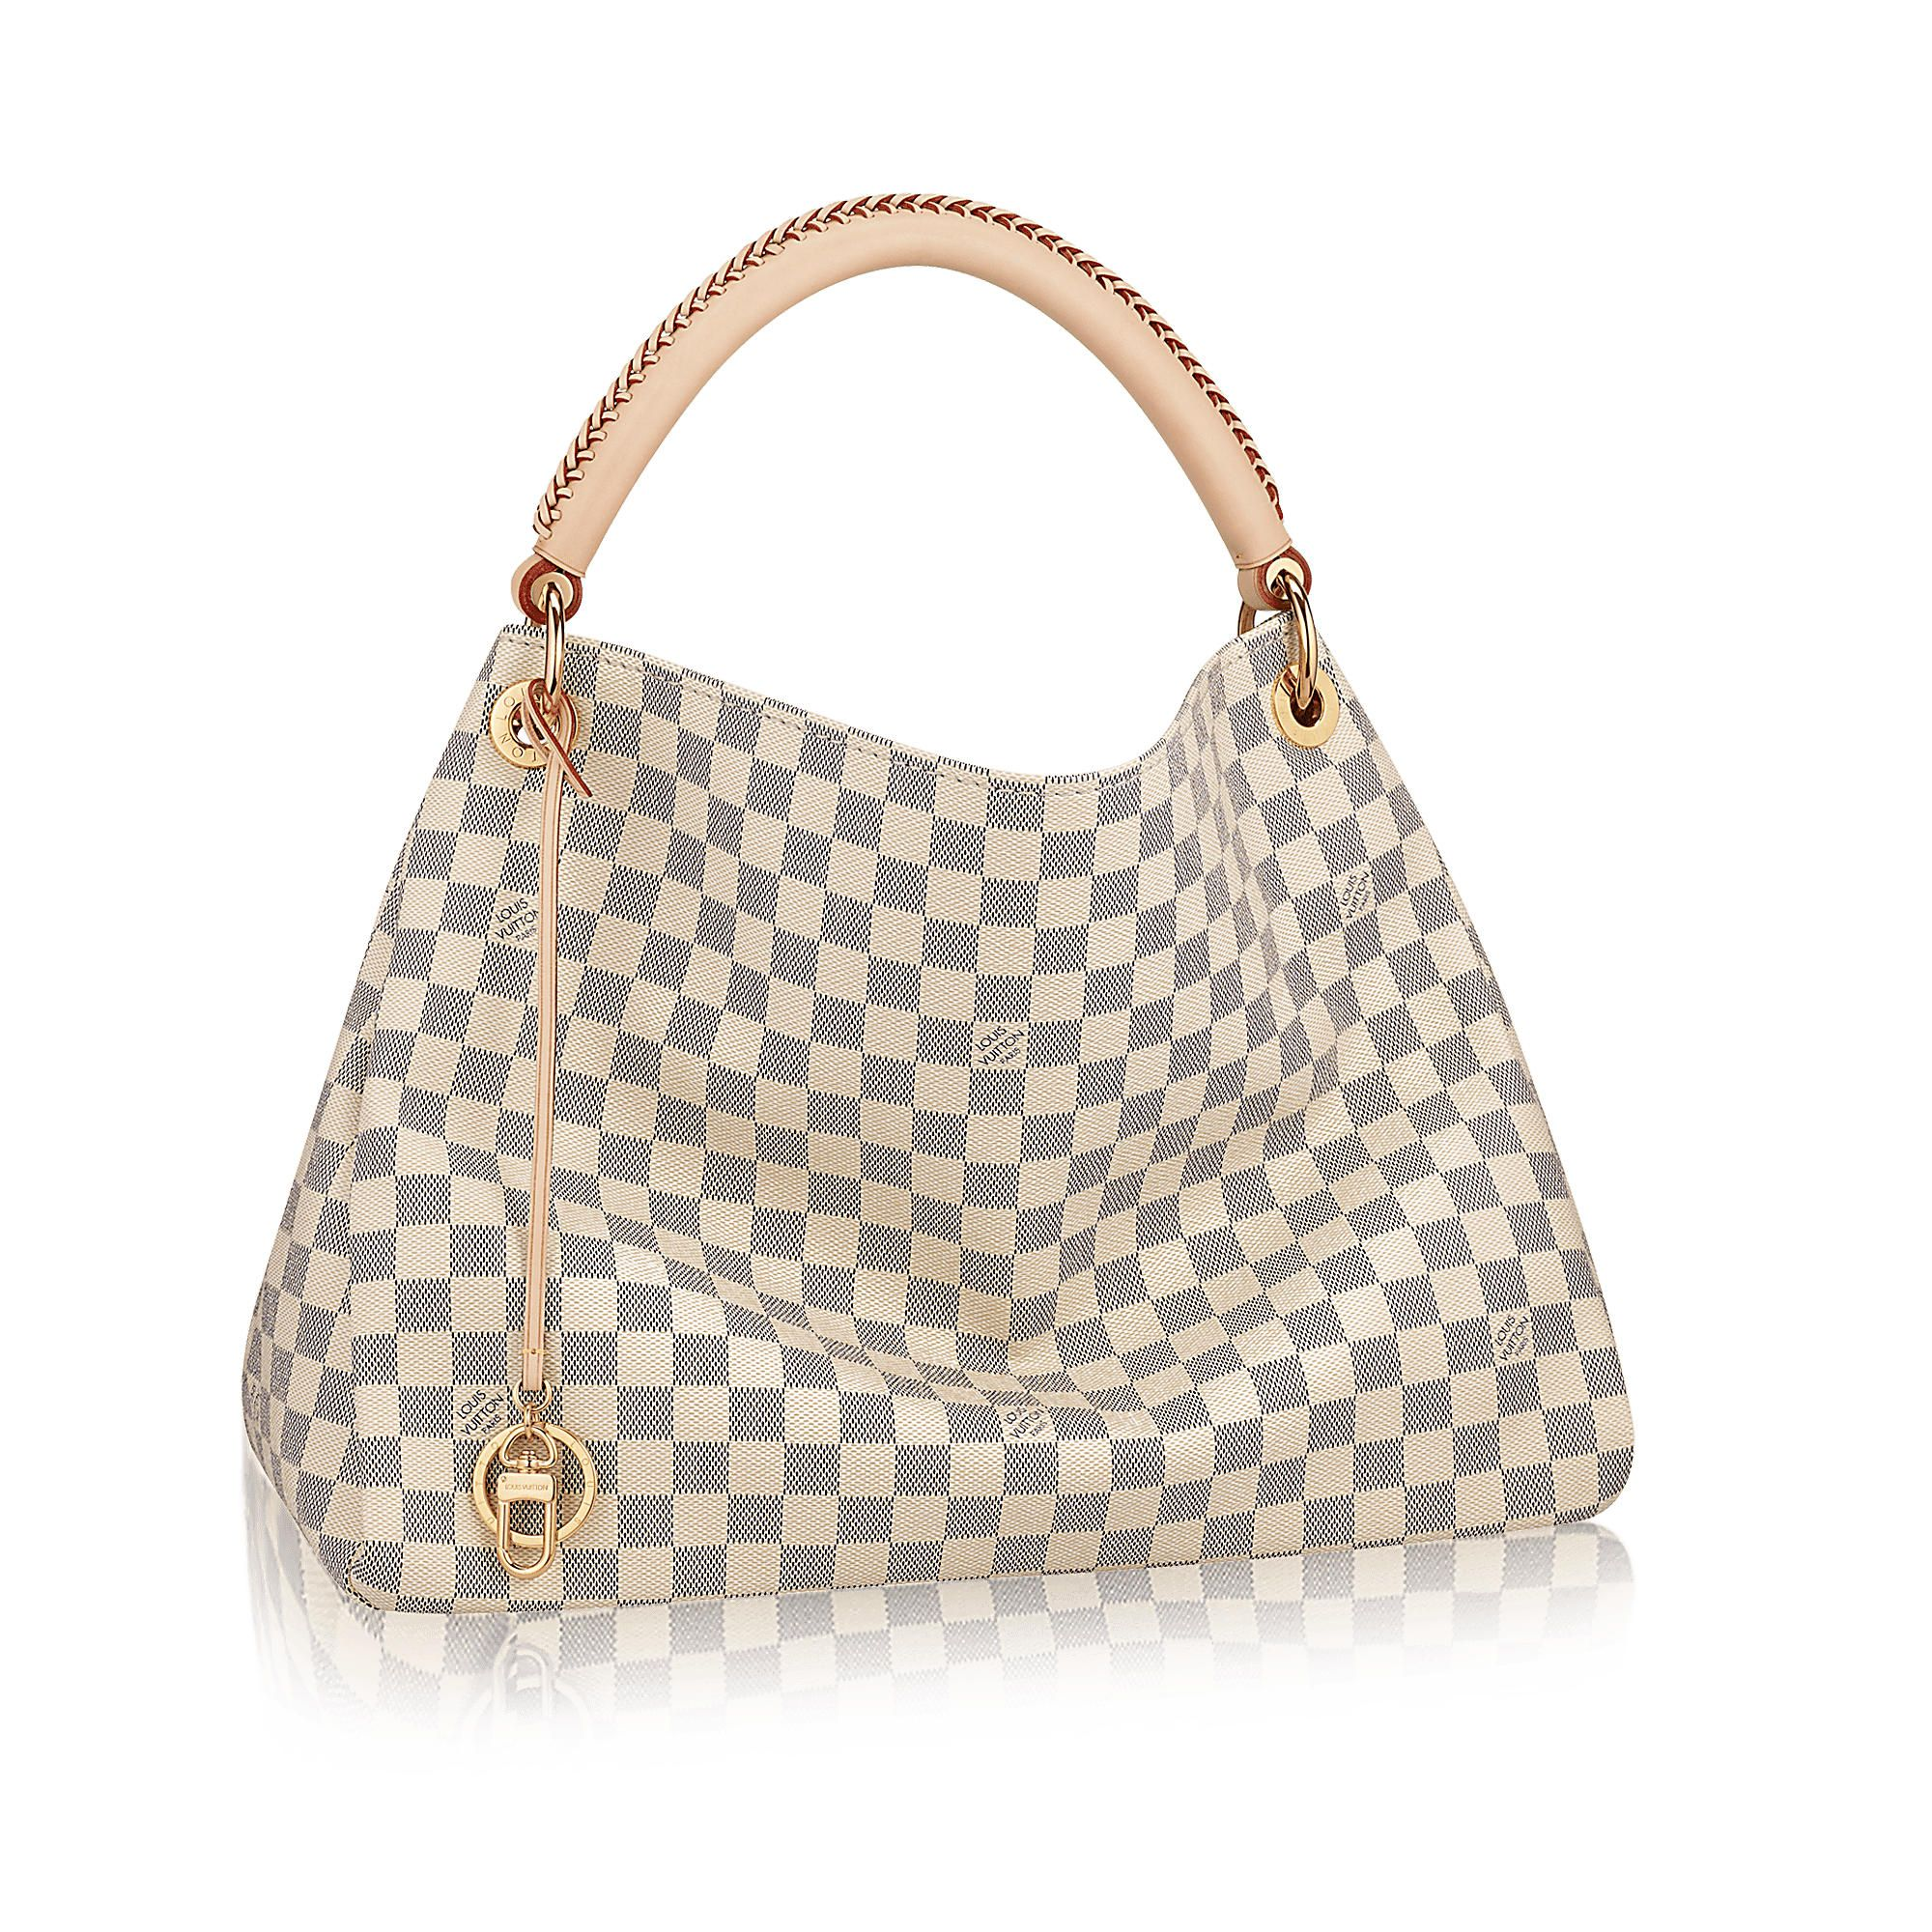 b4882ceaae93 Discover Louis Vuitton Artsy MM via Louis Vuitton ... It s a tie between  this one and the Sully MM.